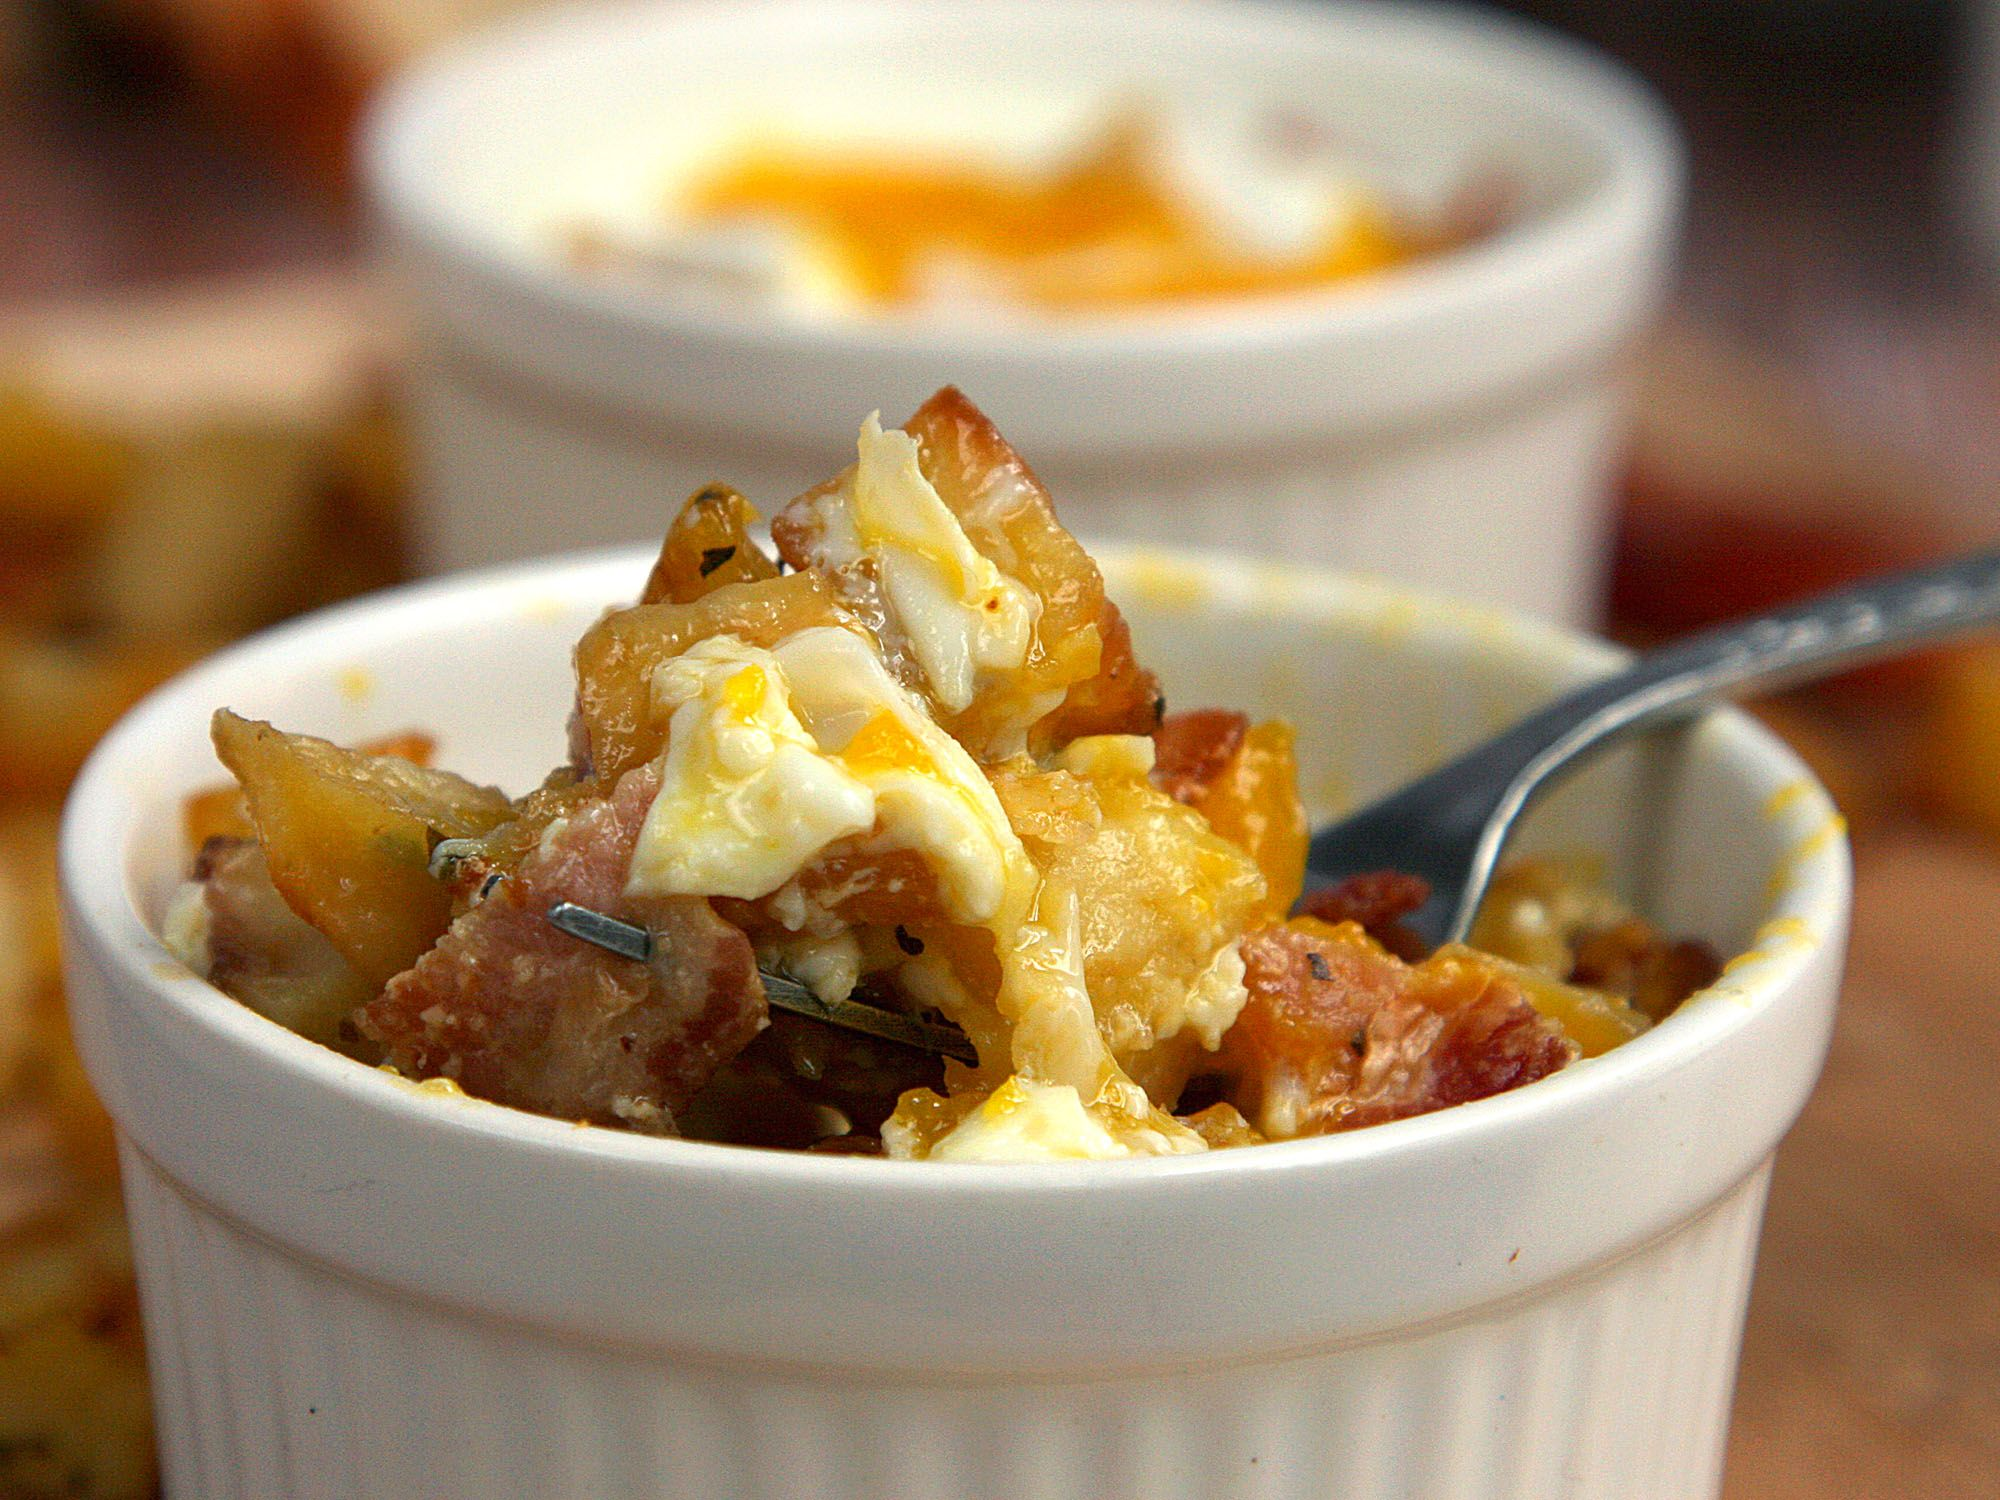 Bacon and Roasted Potato Baked Eggs